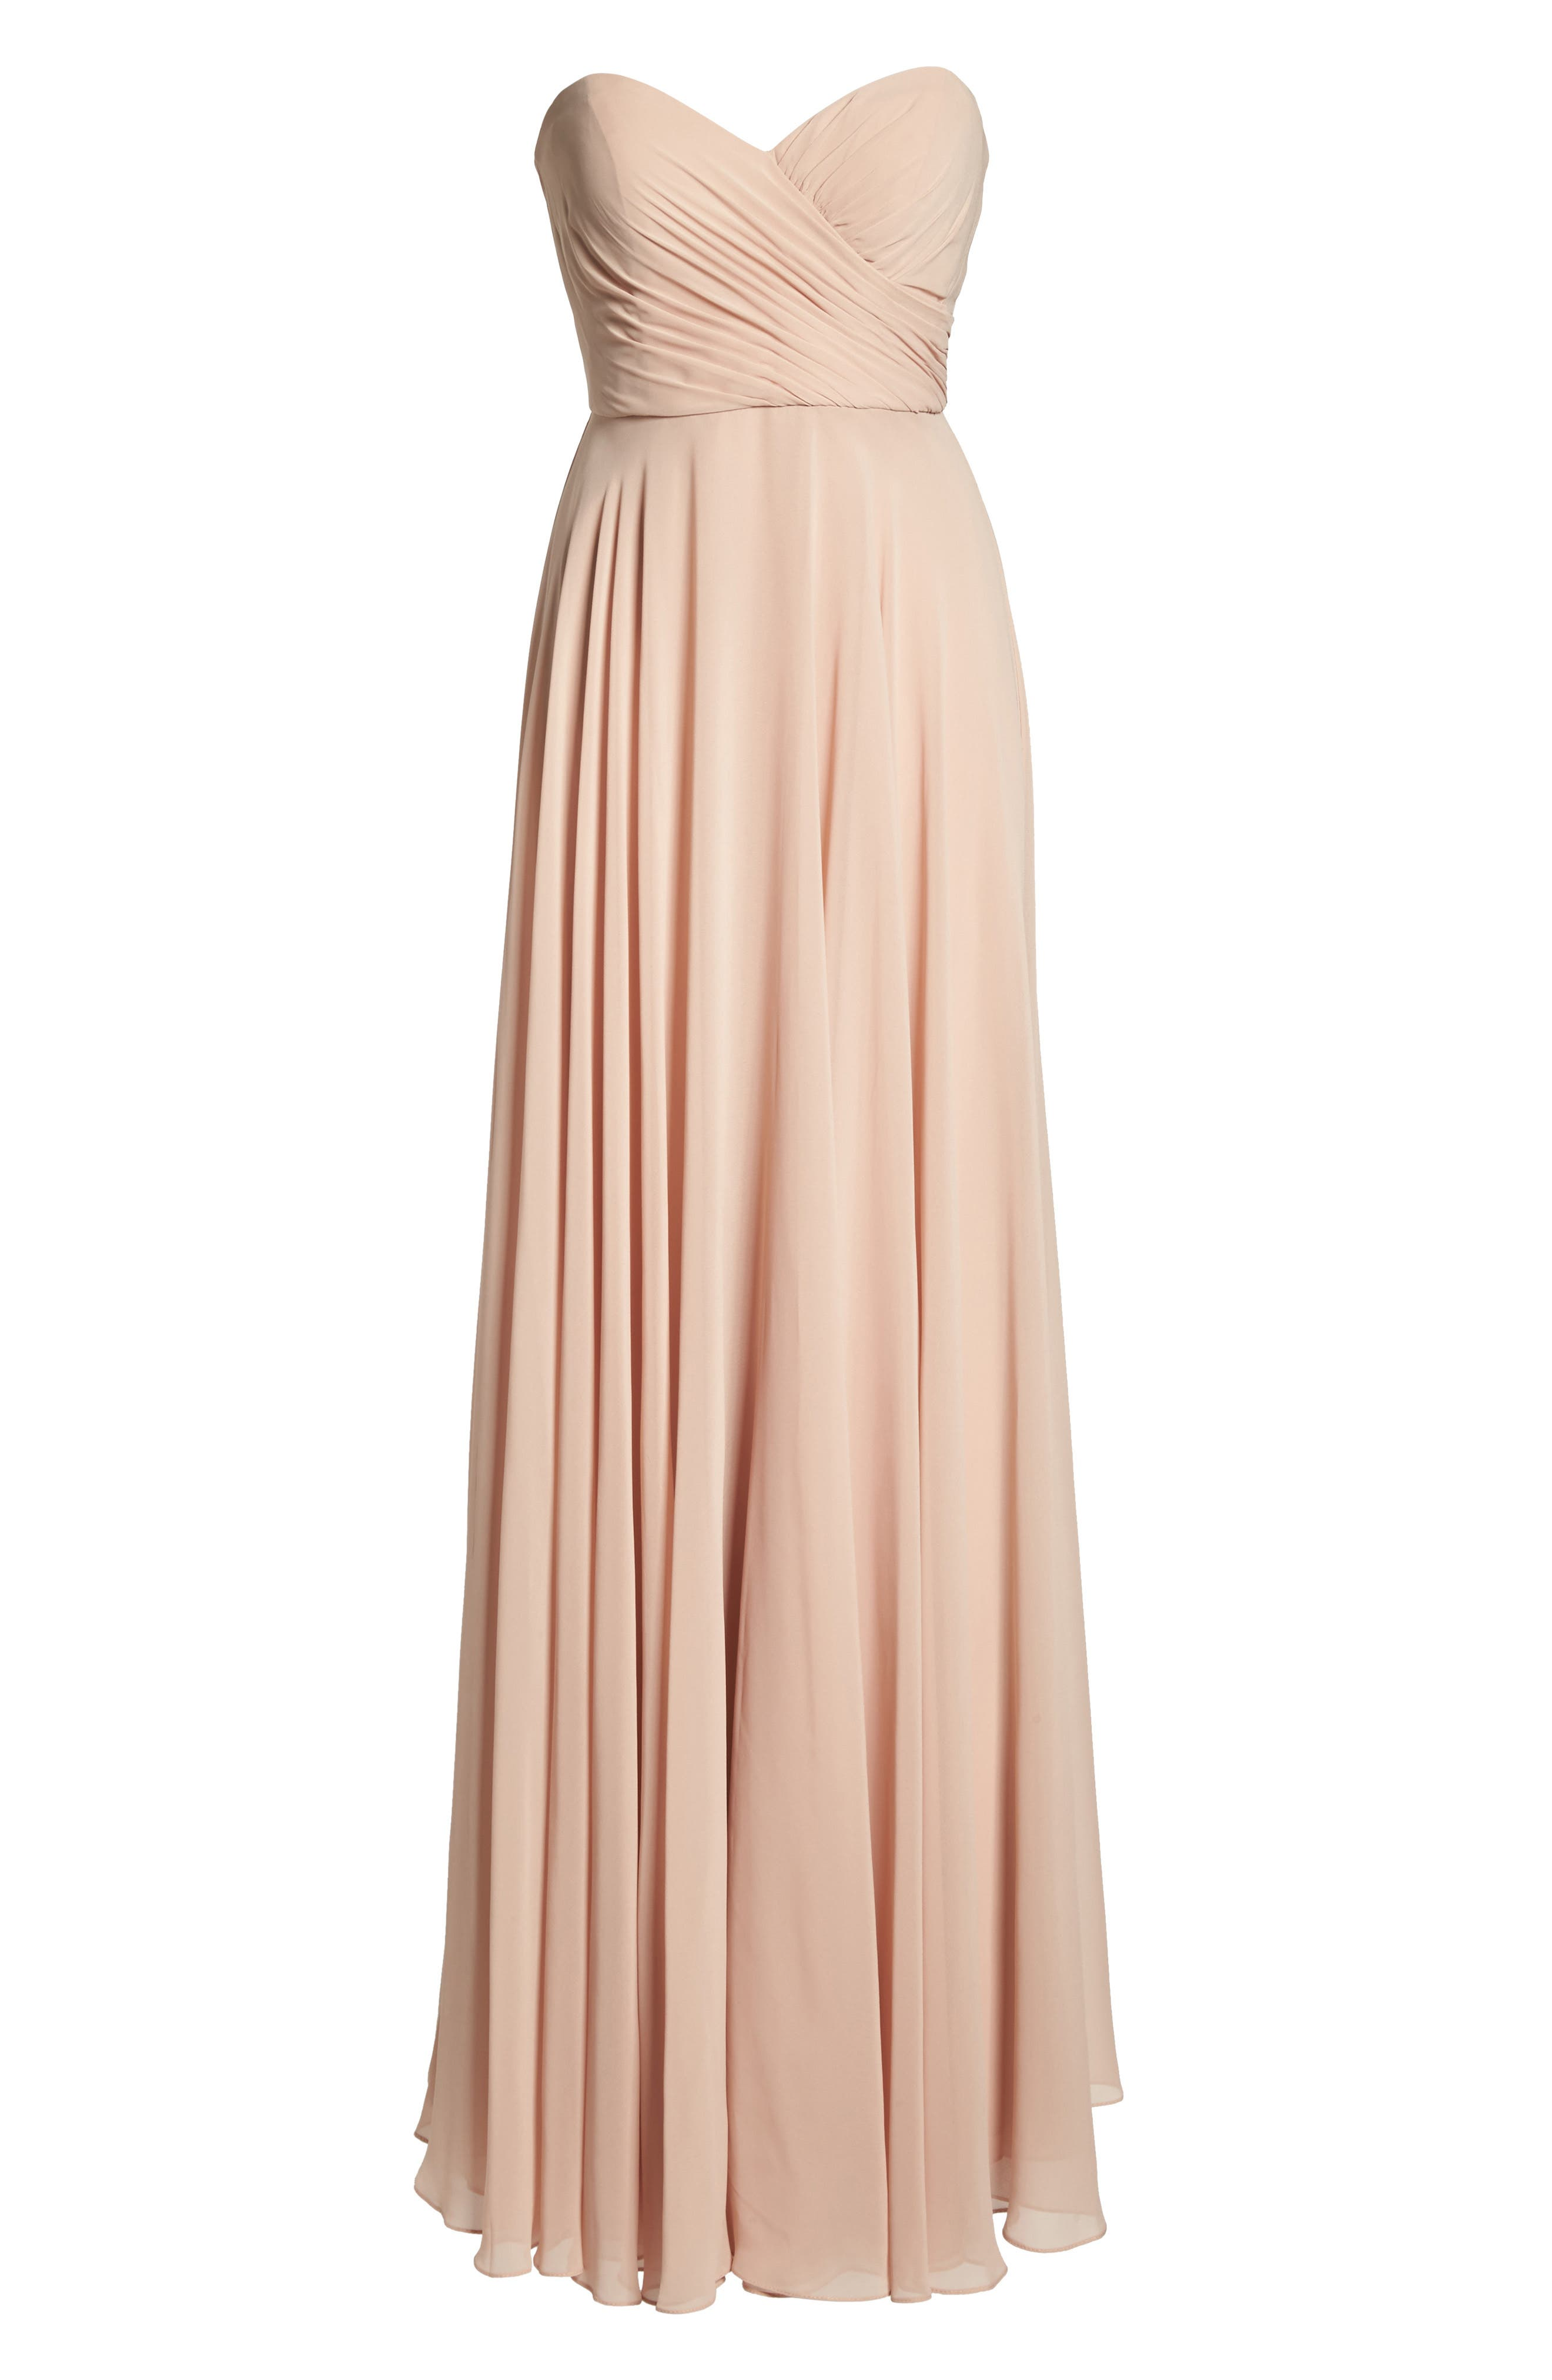 Adeline Strapless Chiffon Gown,                             Alternate thumbnail 6, color,                             Desert Rose